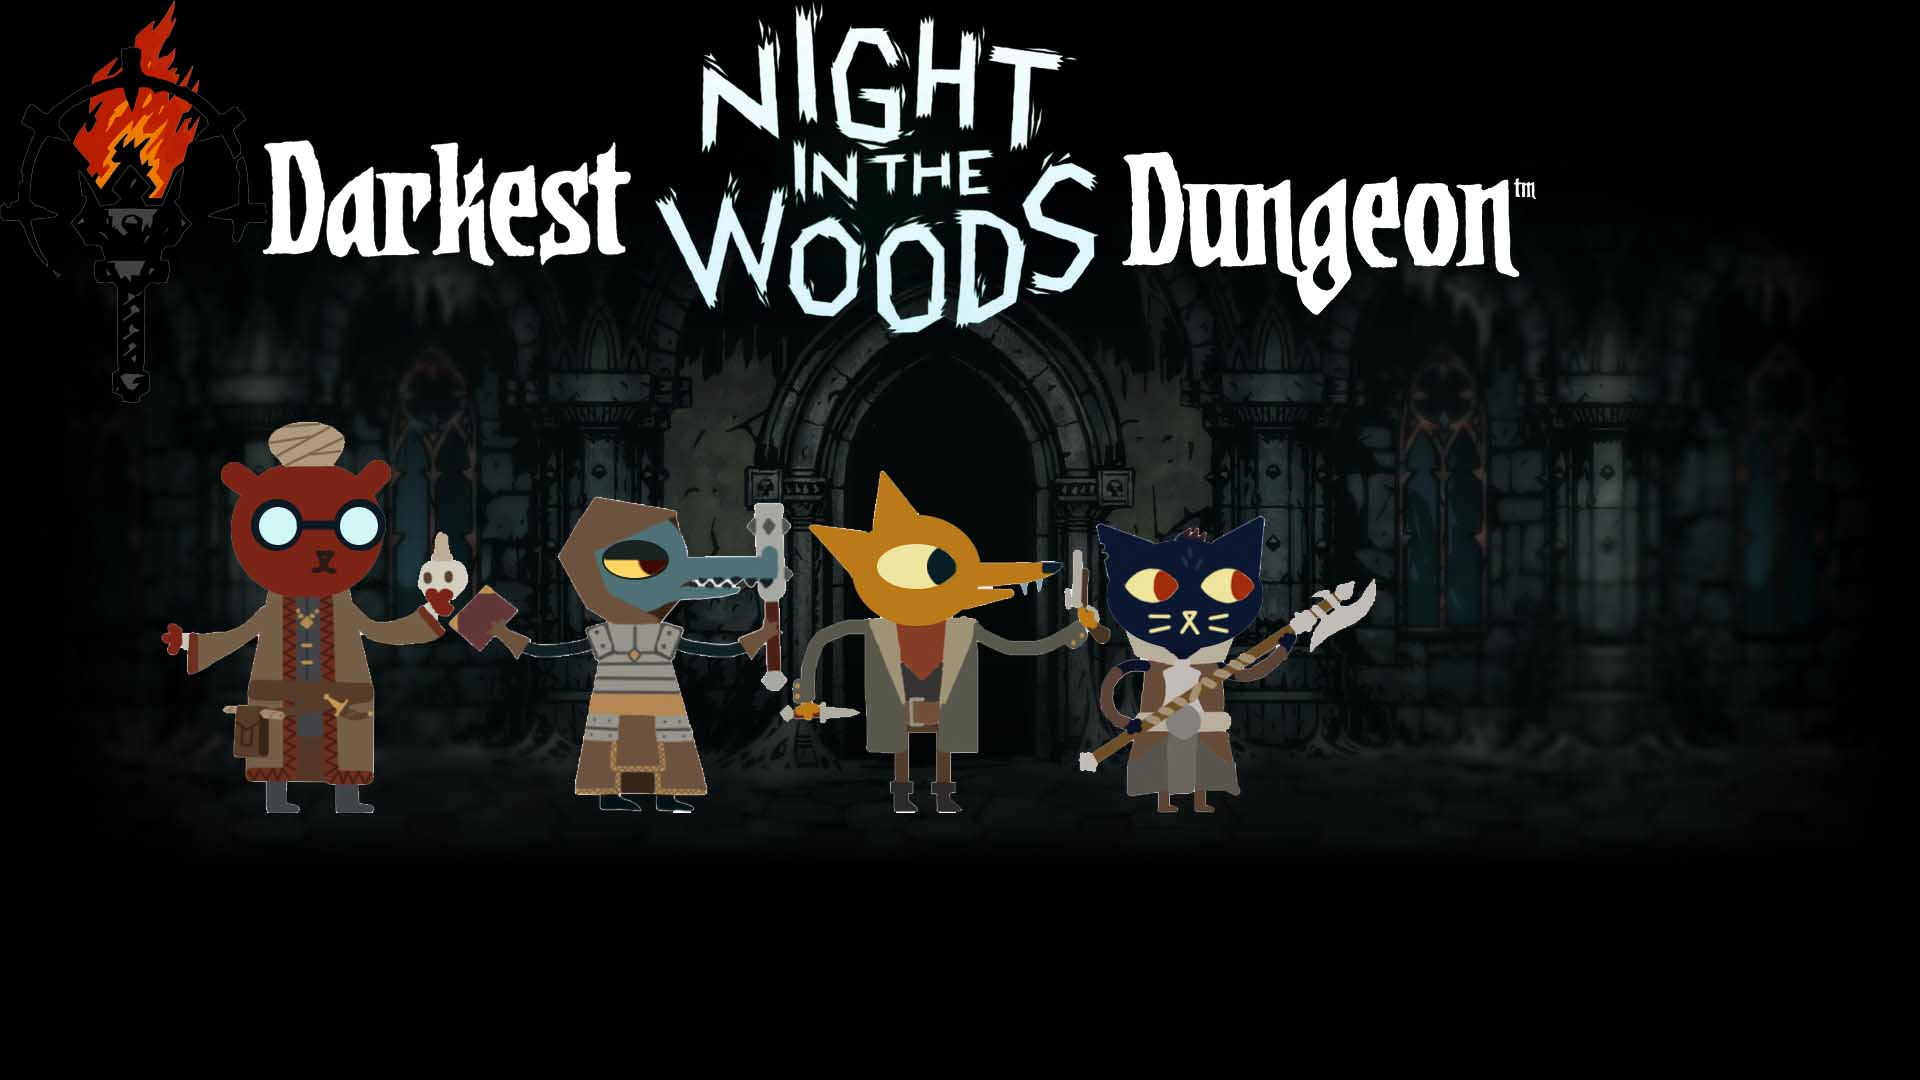 Night In The Darkest Woods Night In The Woods Know Your Meme